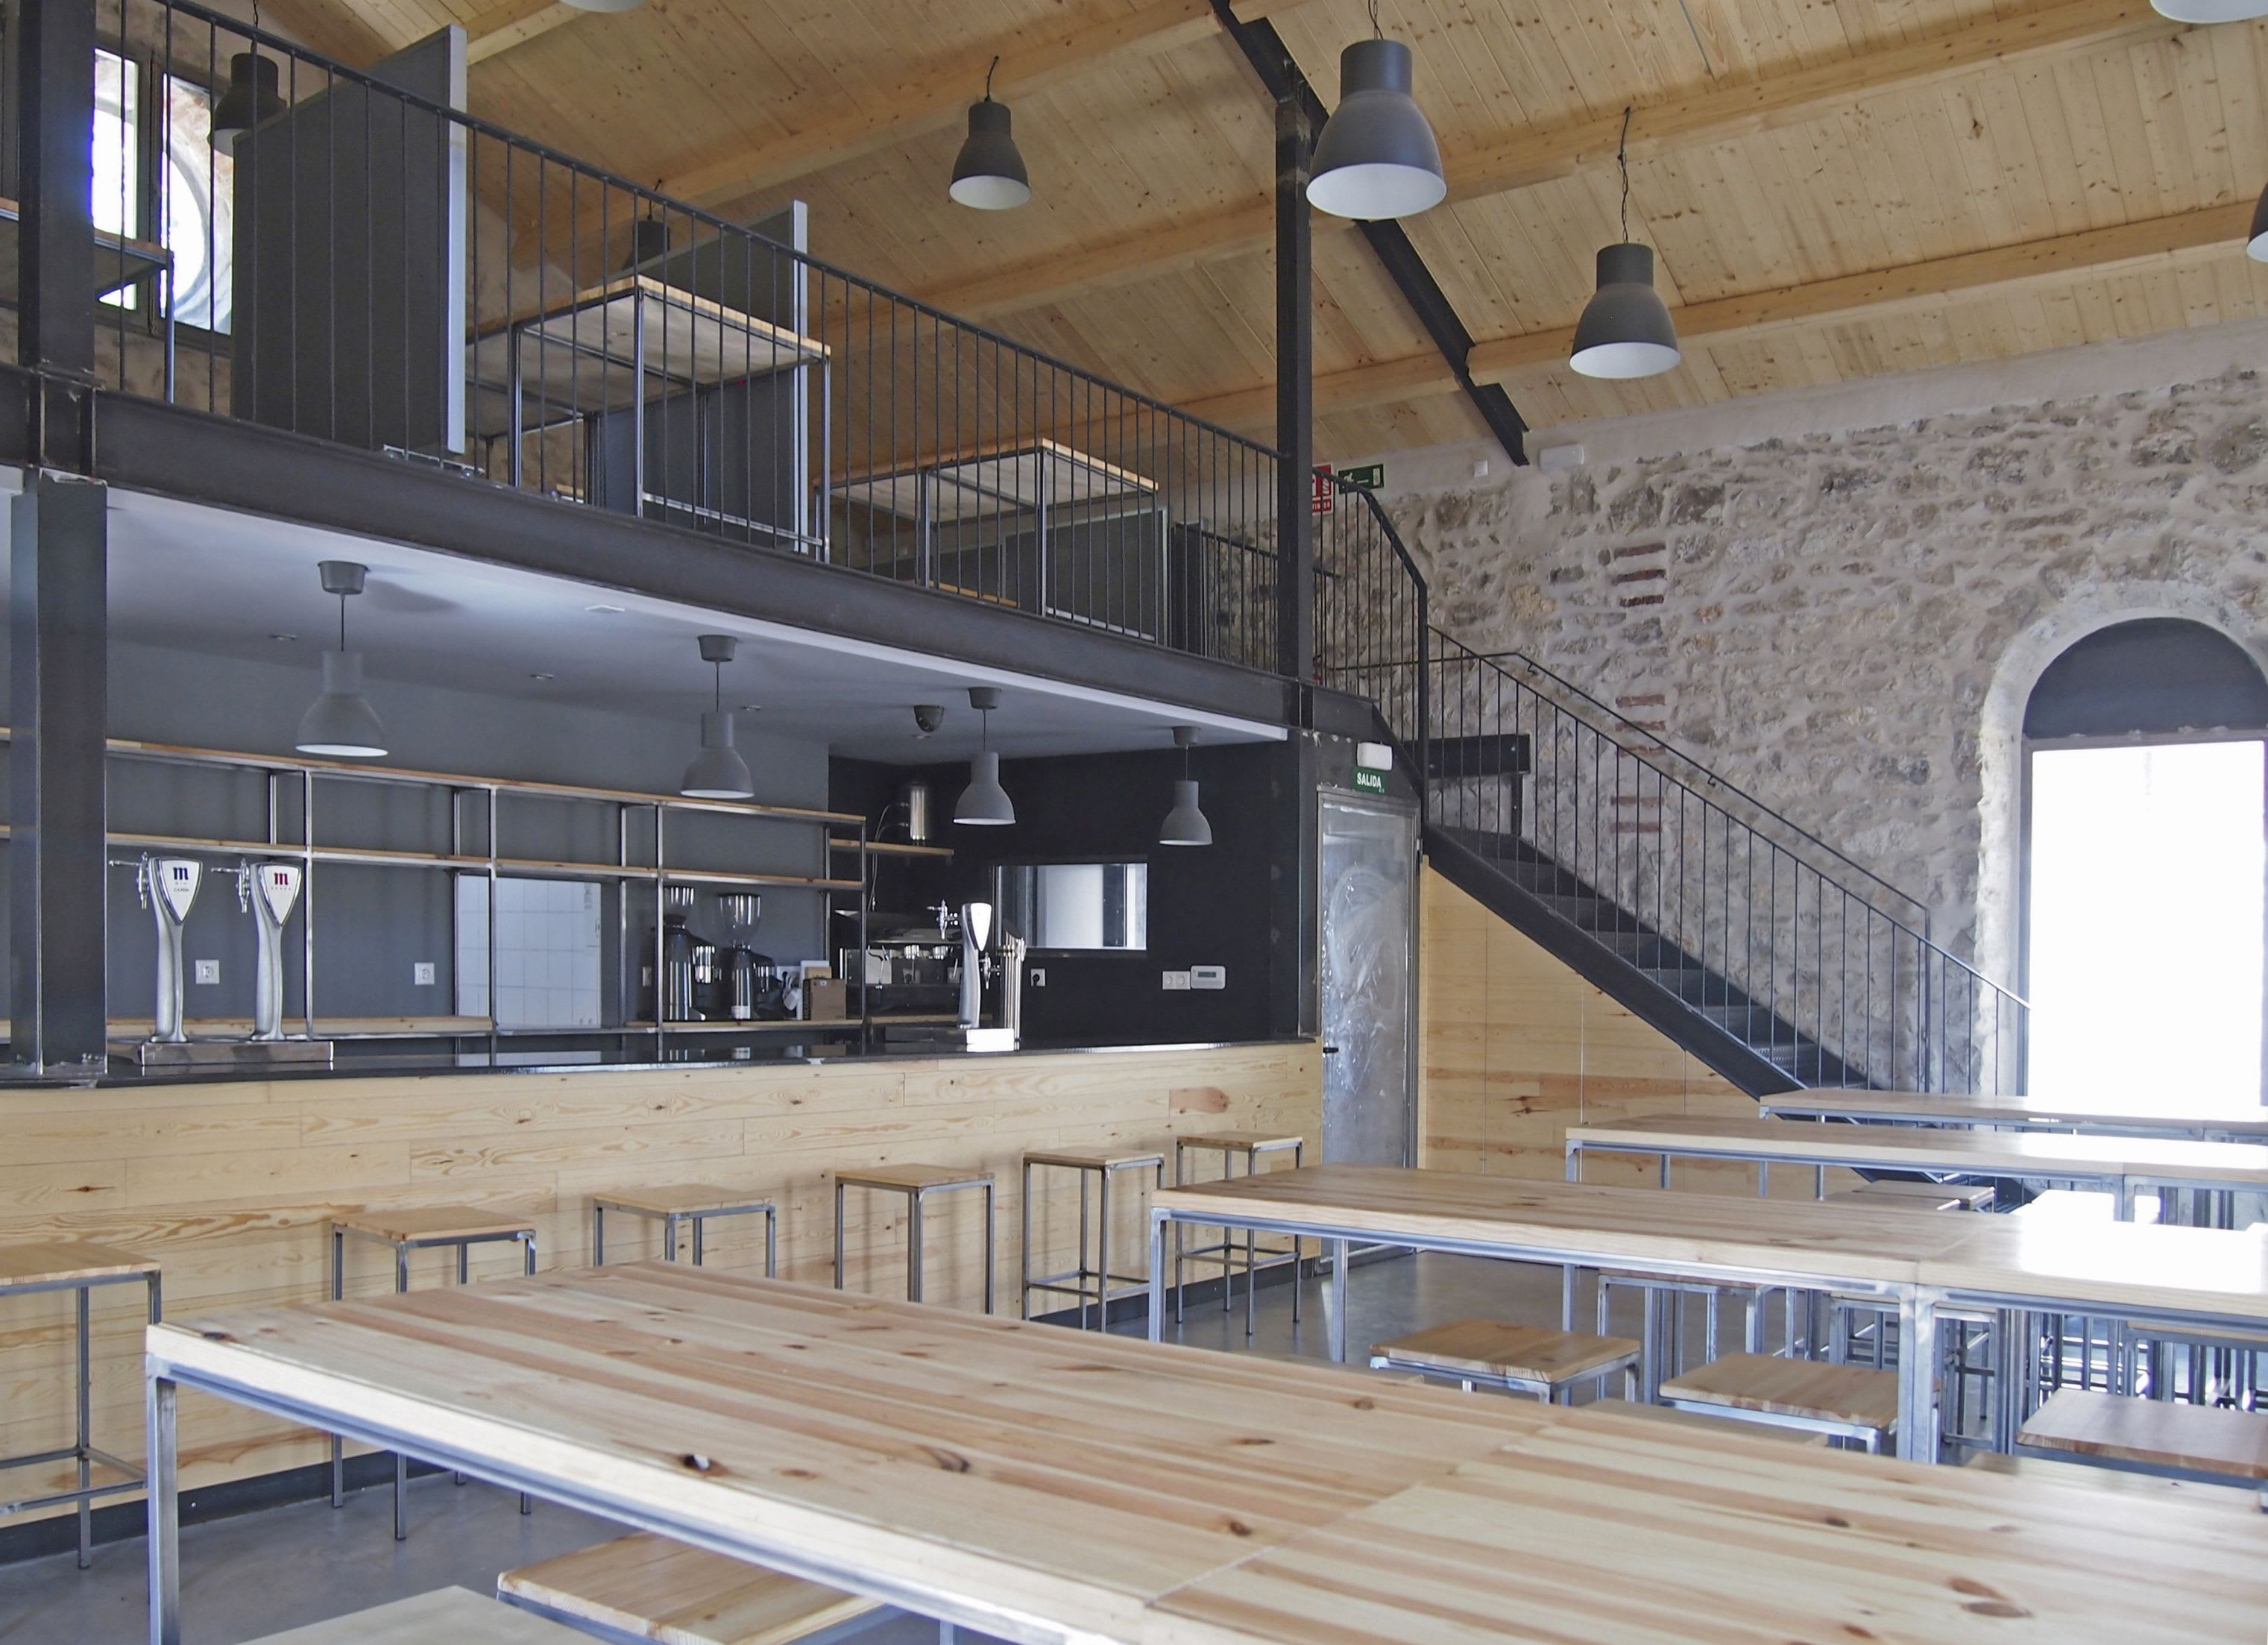 Restaurants a collection curated by divisare - Bar para casa ...